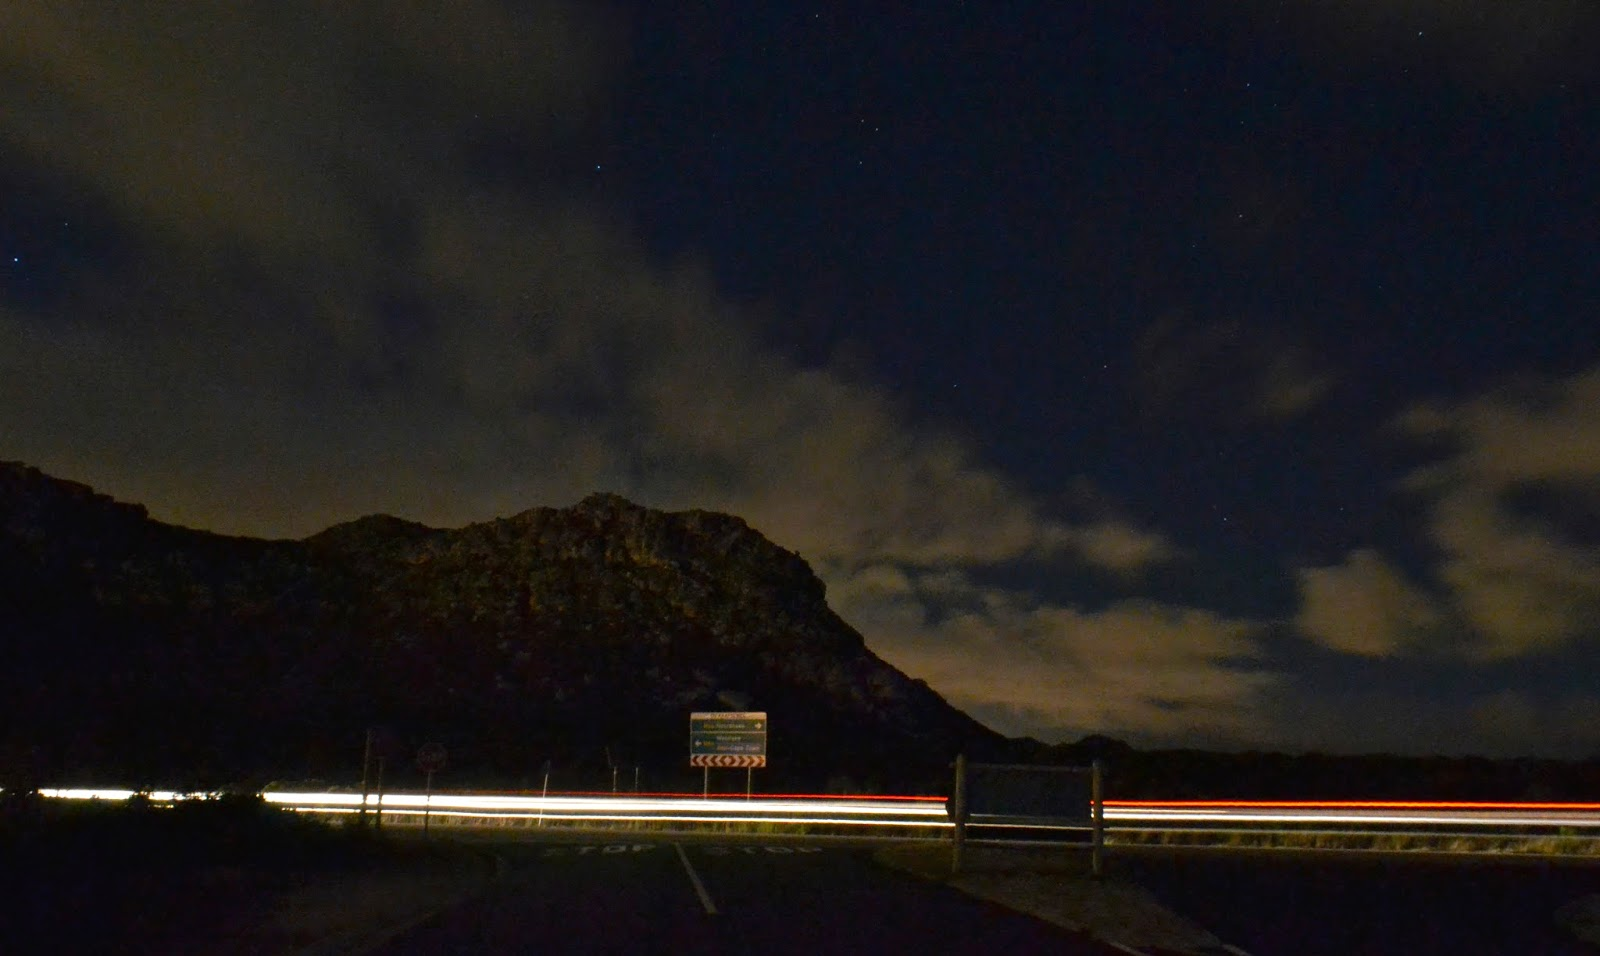 View of mountains from Ou Kaapse Weg at night